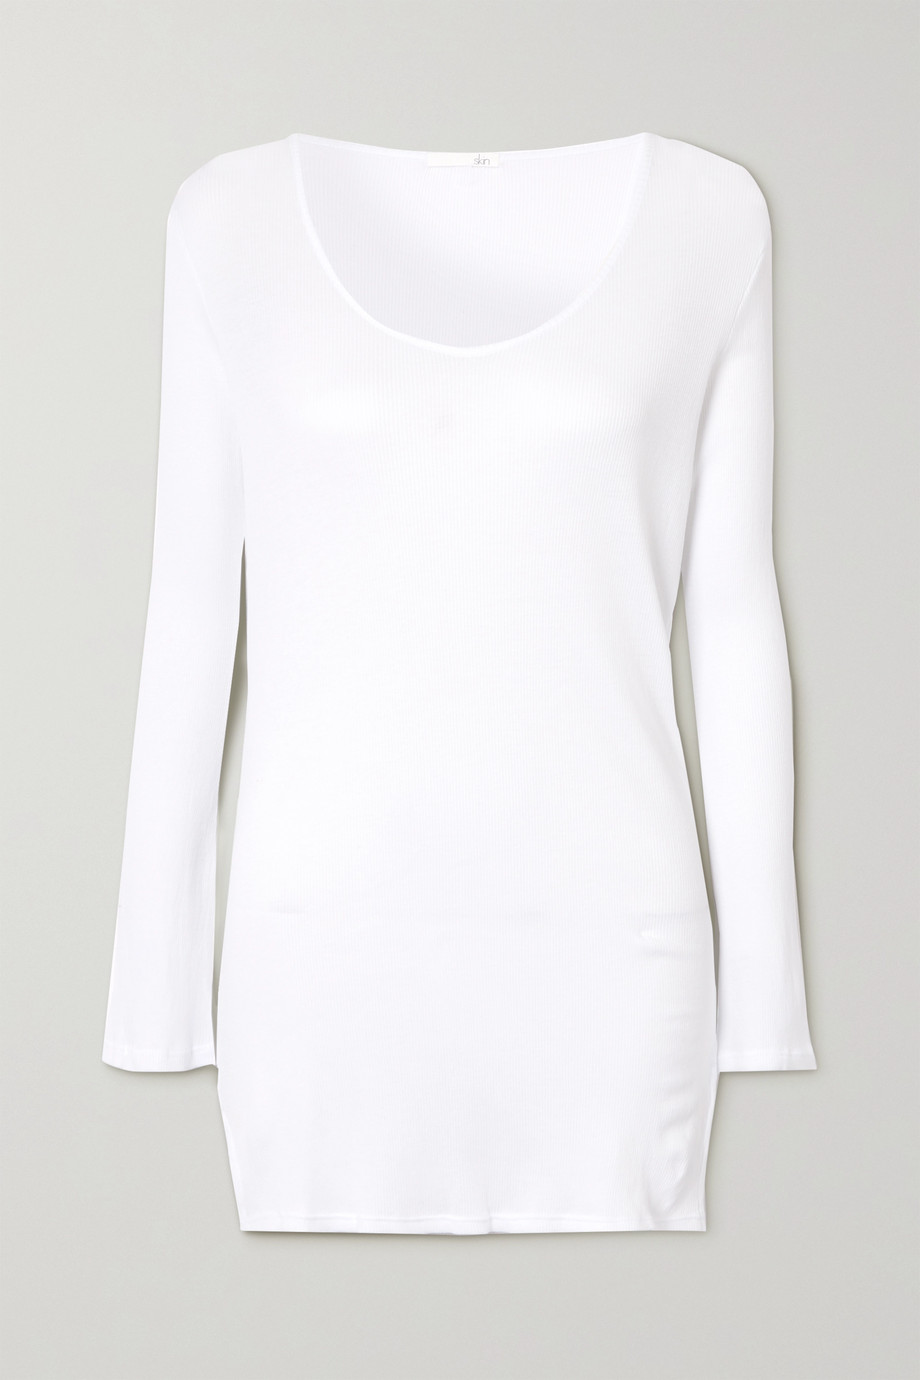 Skin Romina ribbed organic Pima cotton-jersey top